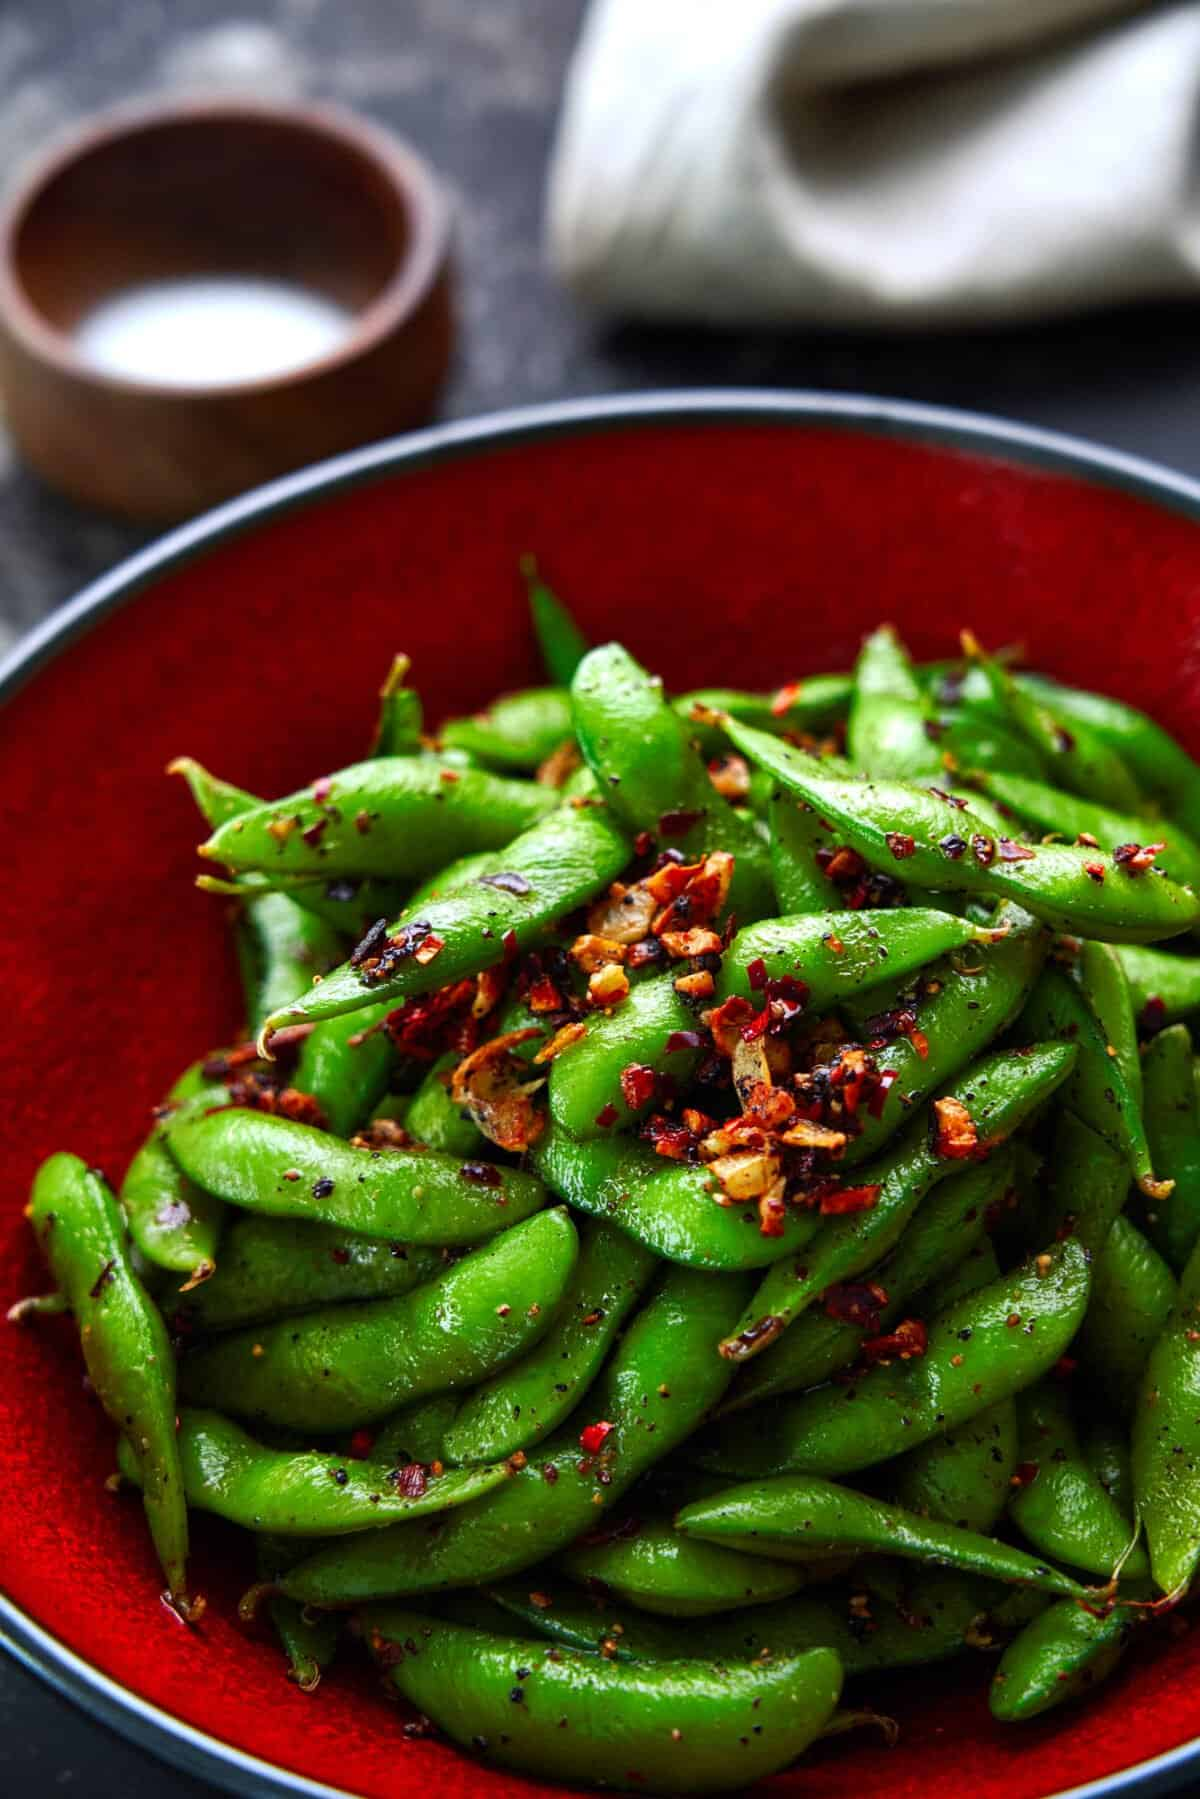 Up your snack game with this Spicy Edamame recipe that's loaded crispy garlic and a double hit of black pepper and chili peppers.